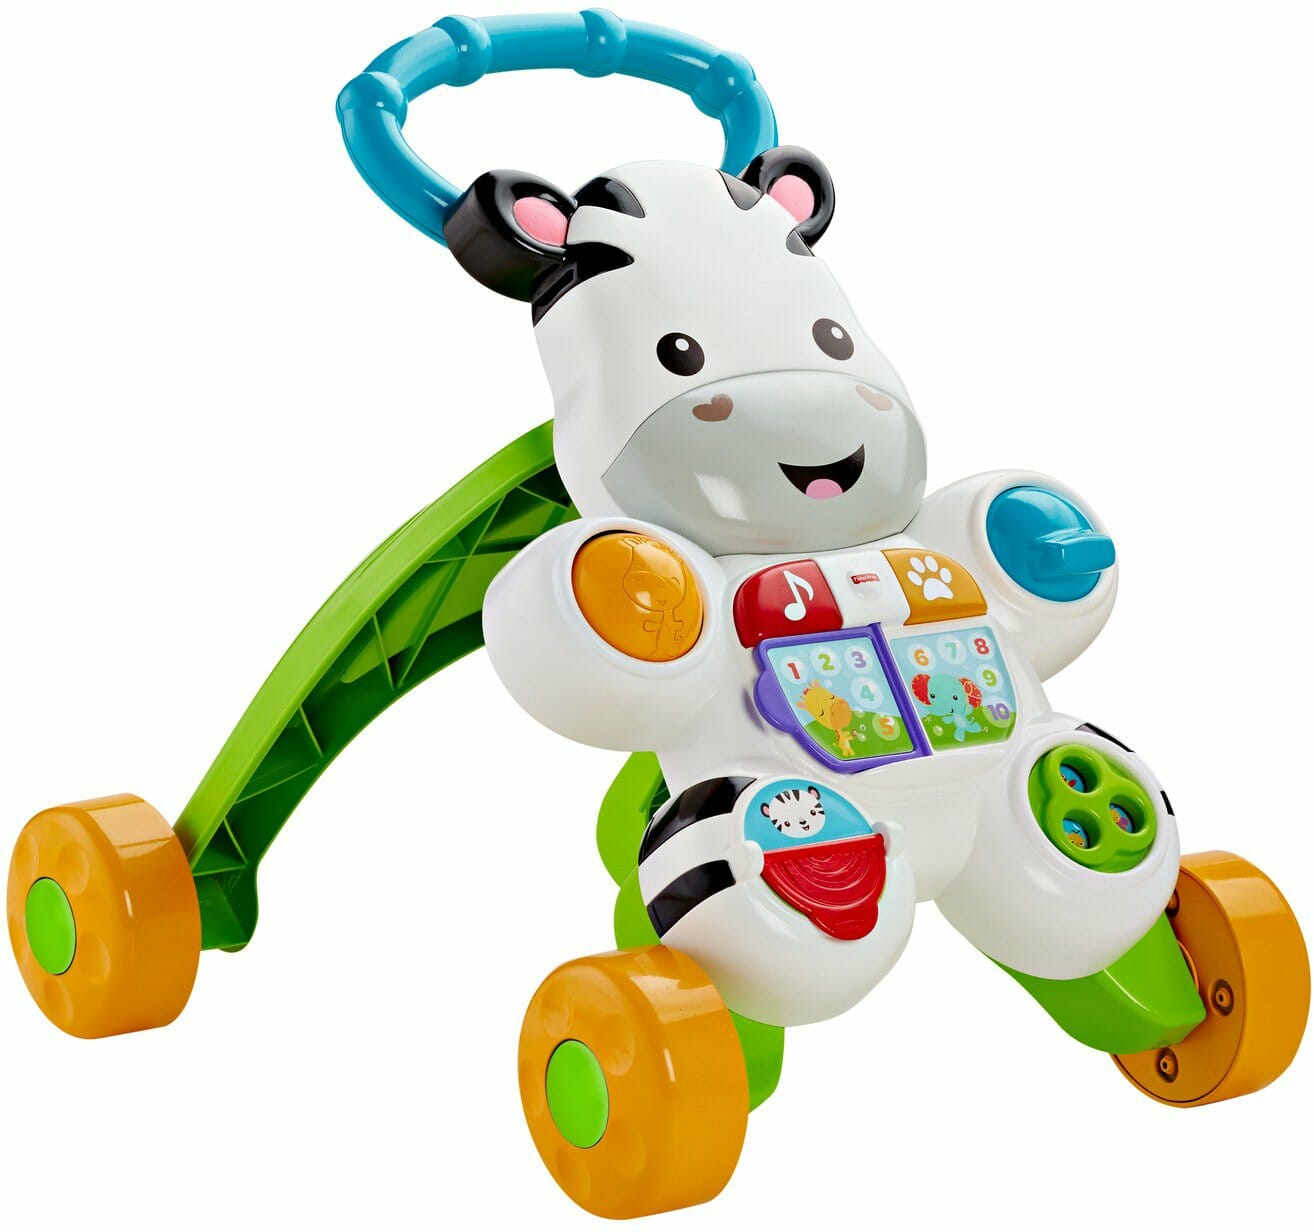 Toys Fisher Price Learn with Me Zebra Walker